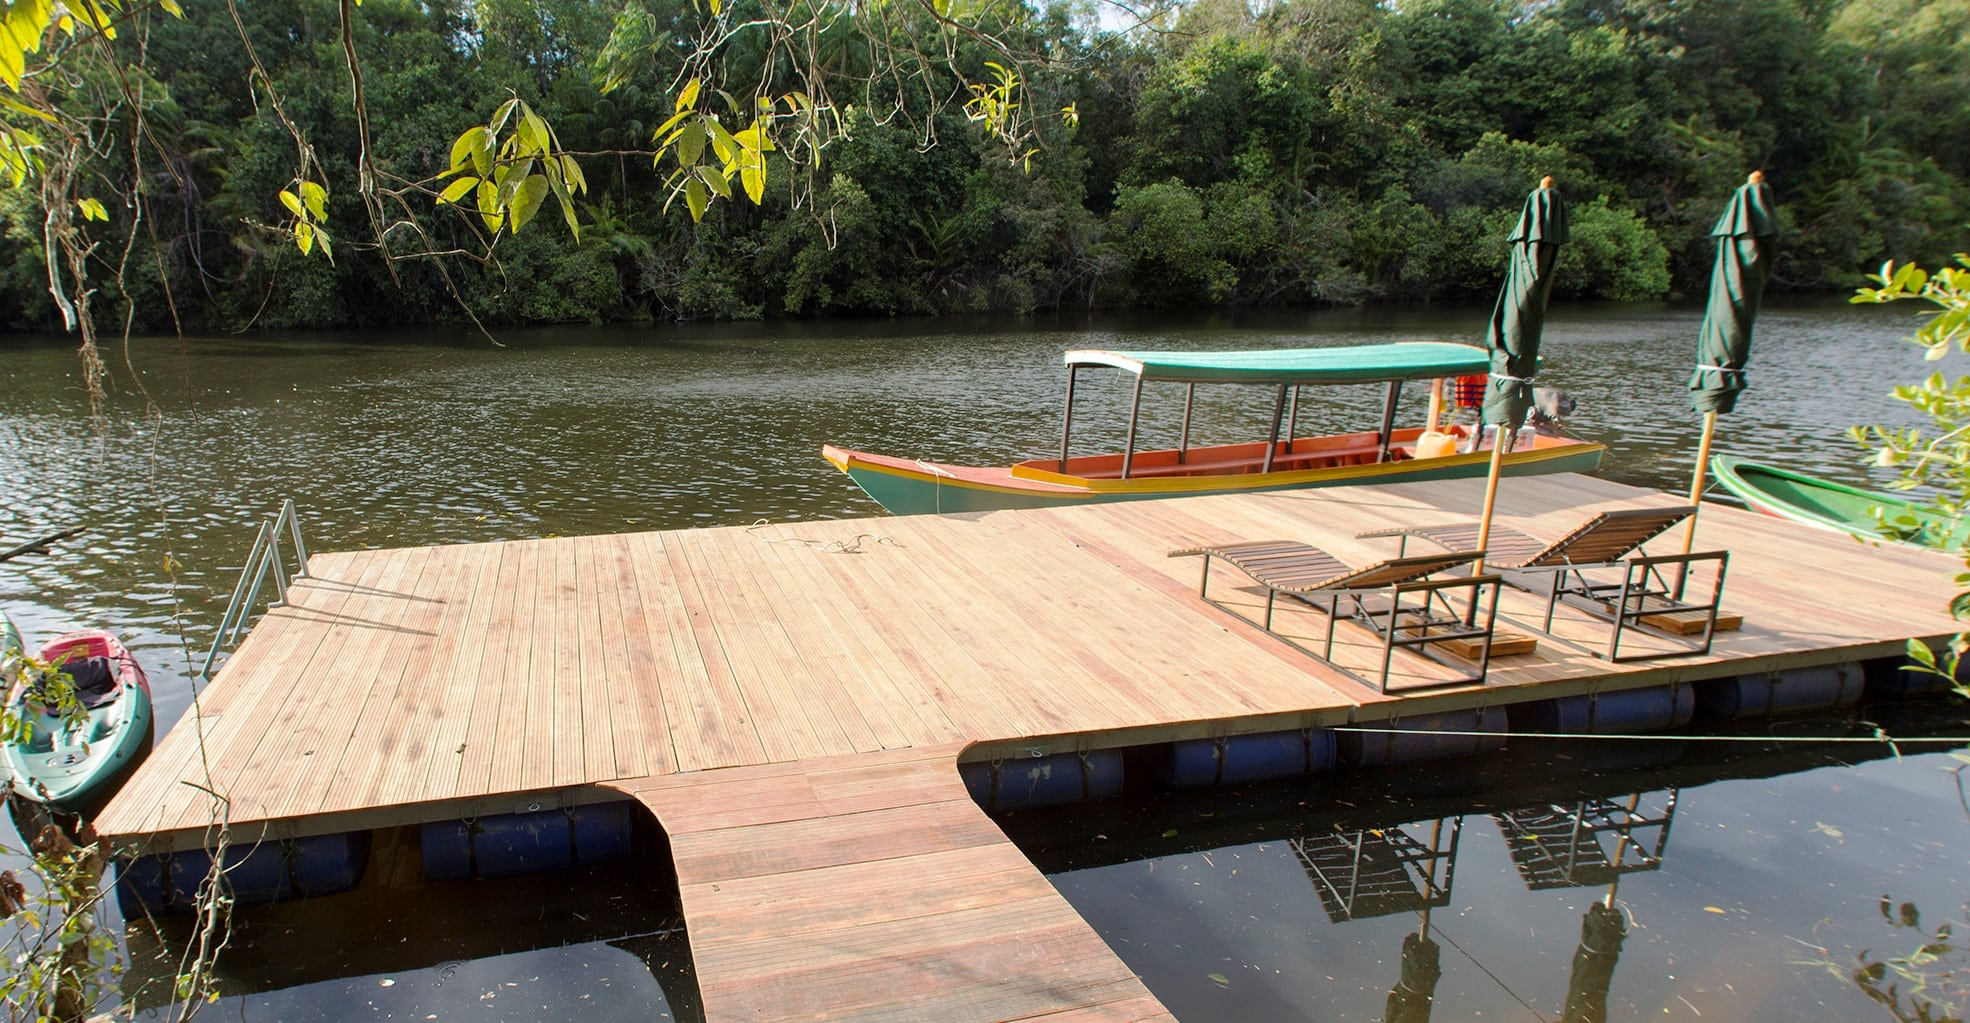 cardamom tented camp Cardamom Tented Camp cardamom tented camp Pier